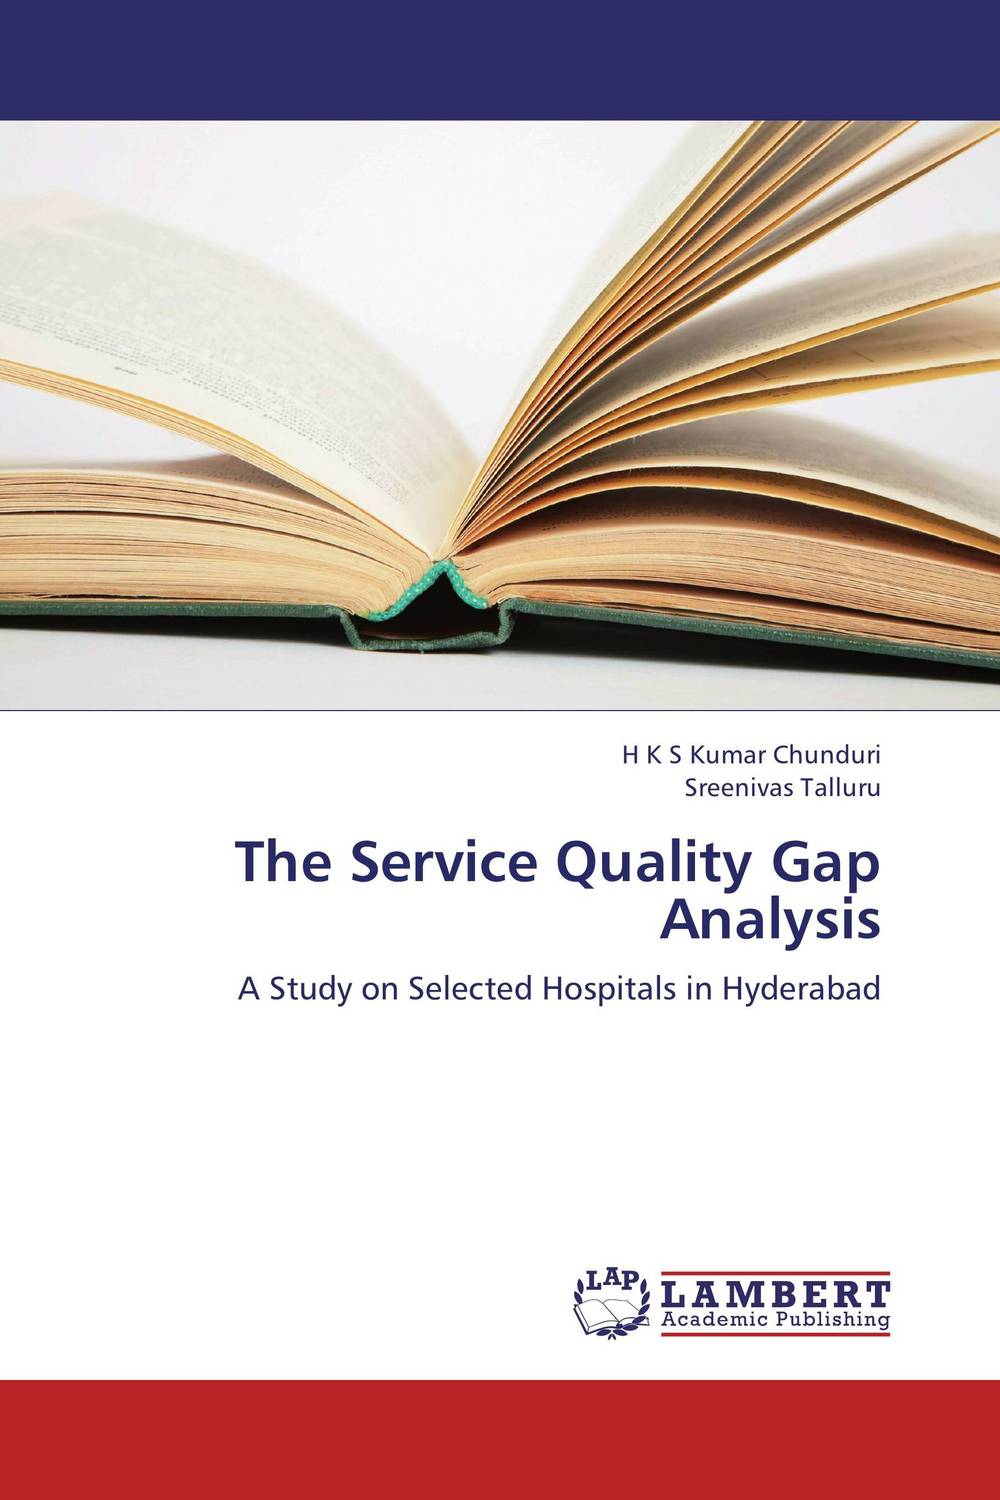 The Service Quality Gap Analysis